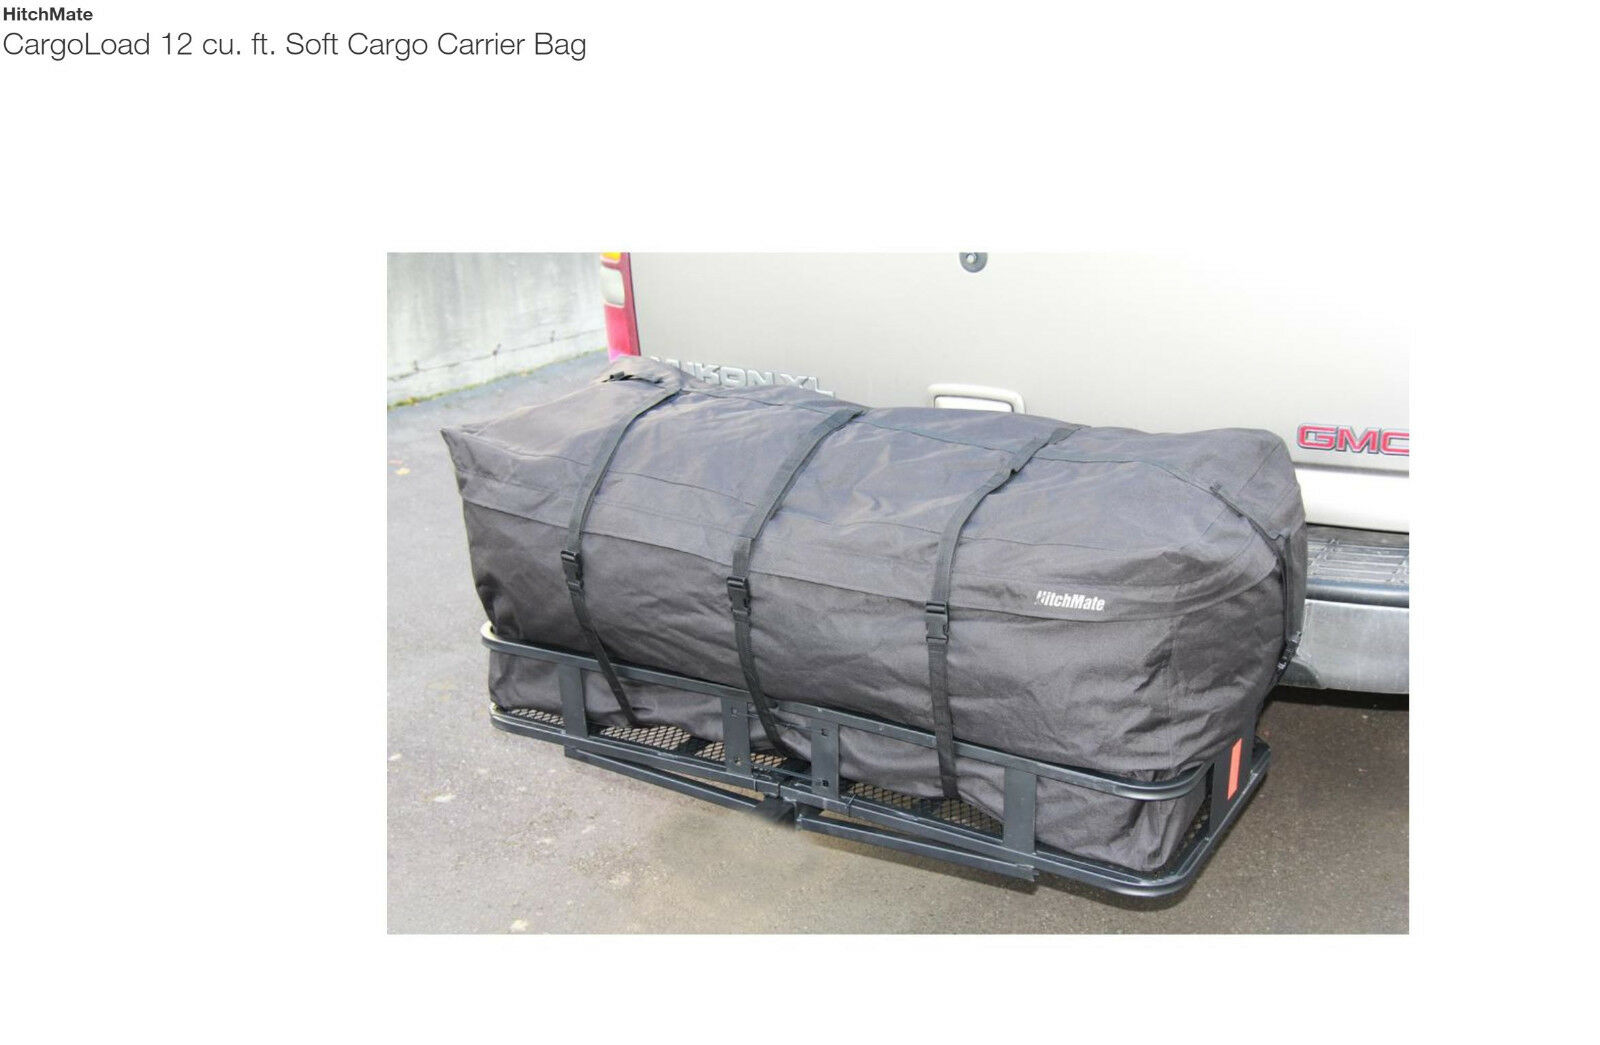 Brand New HitchMate CargoLoad 12 cu. ft. Soft Cargo Carrier Bag